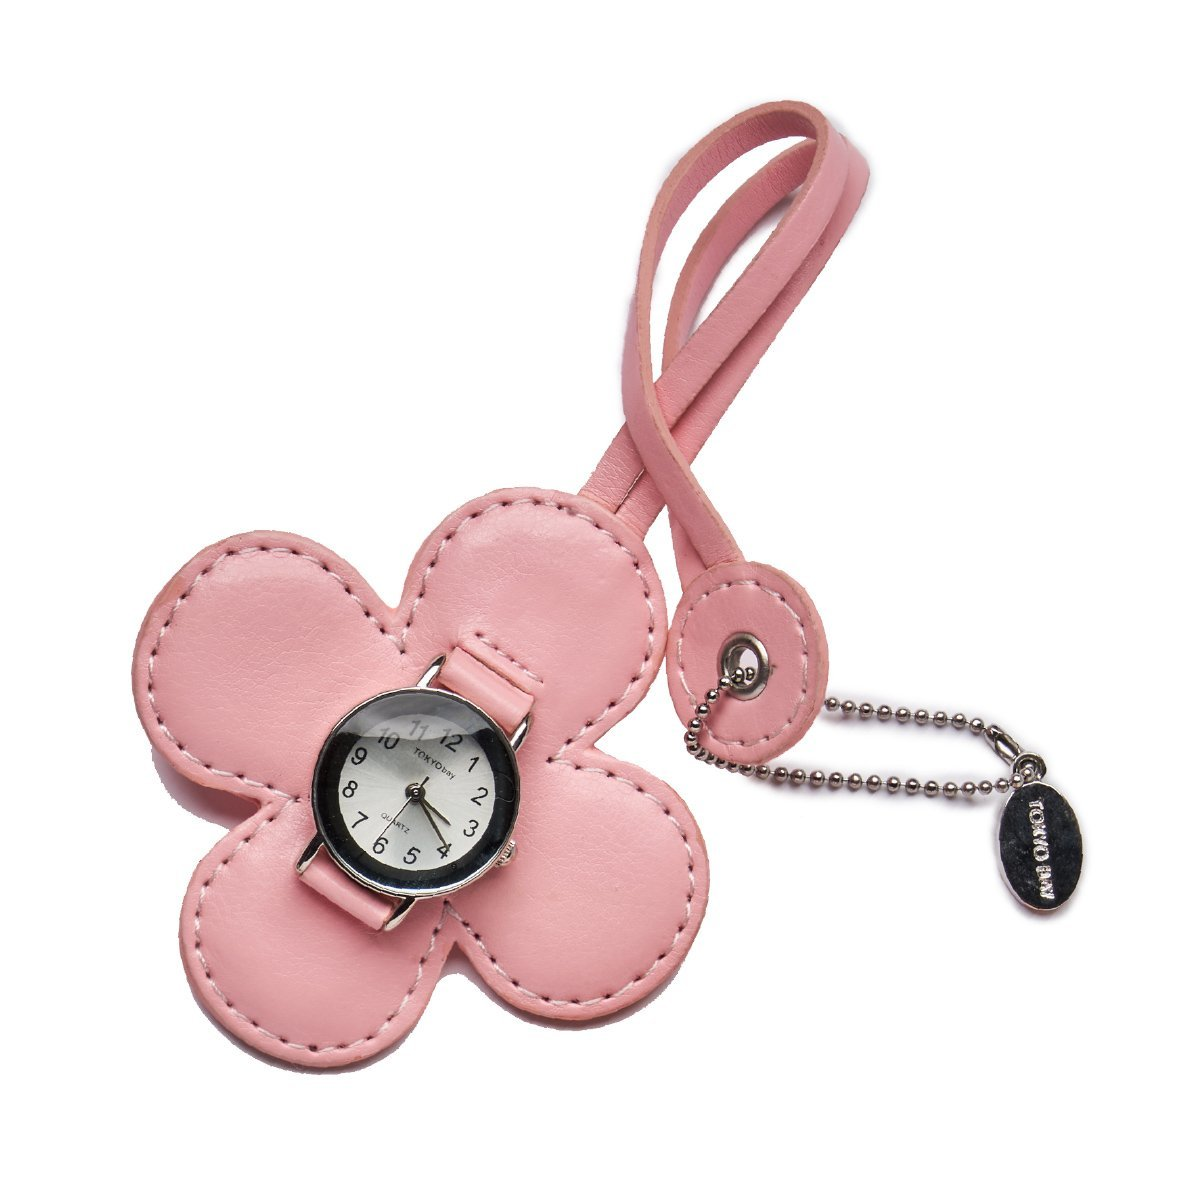 Clover Charm - Pink - Tokyobay